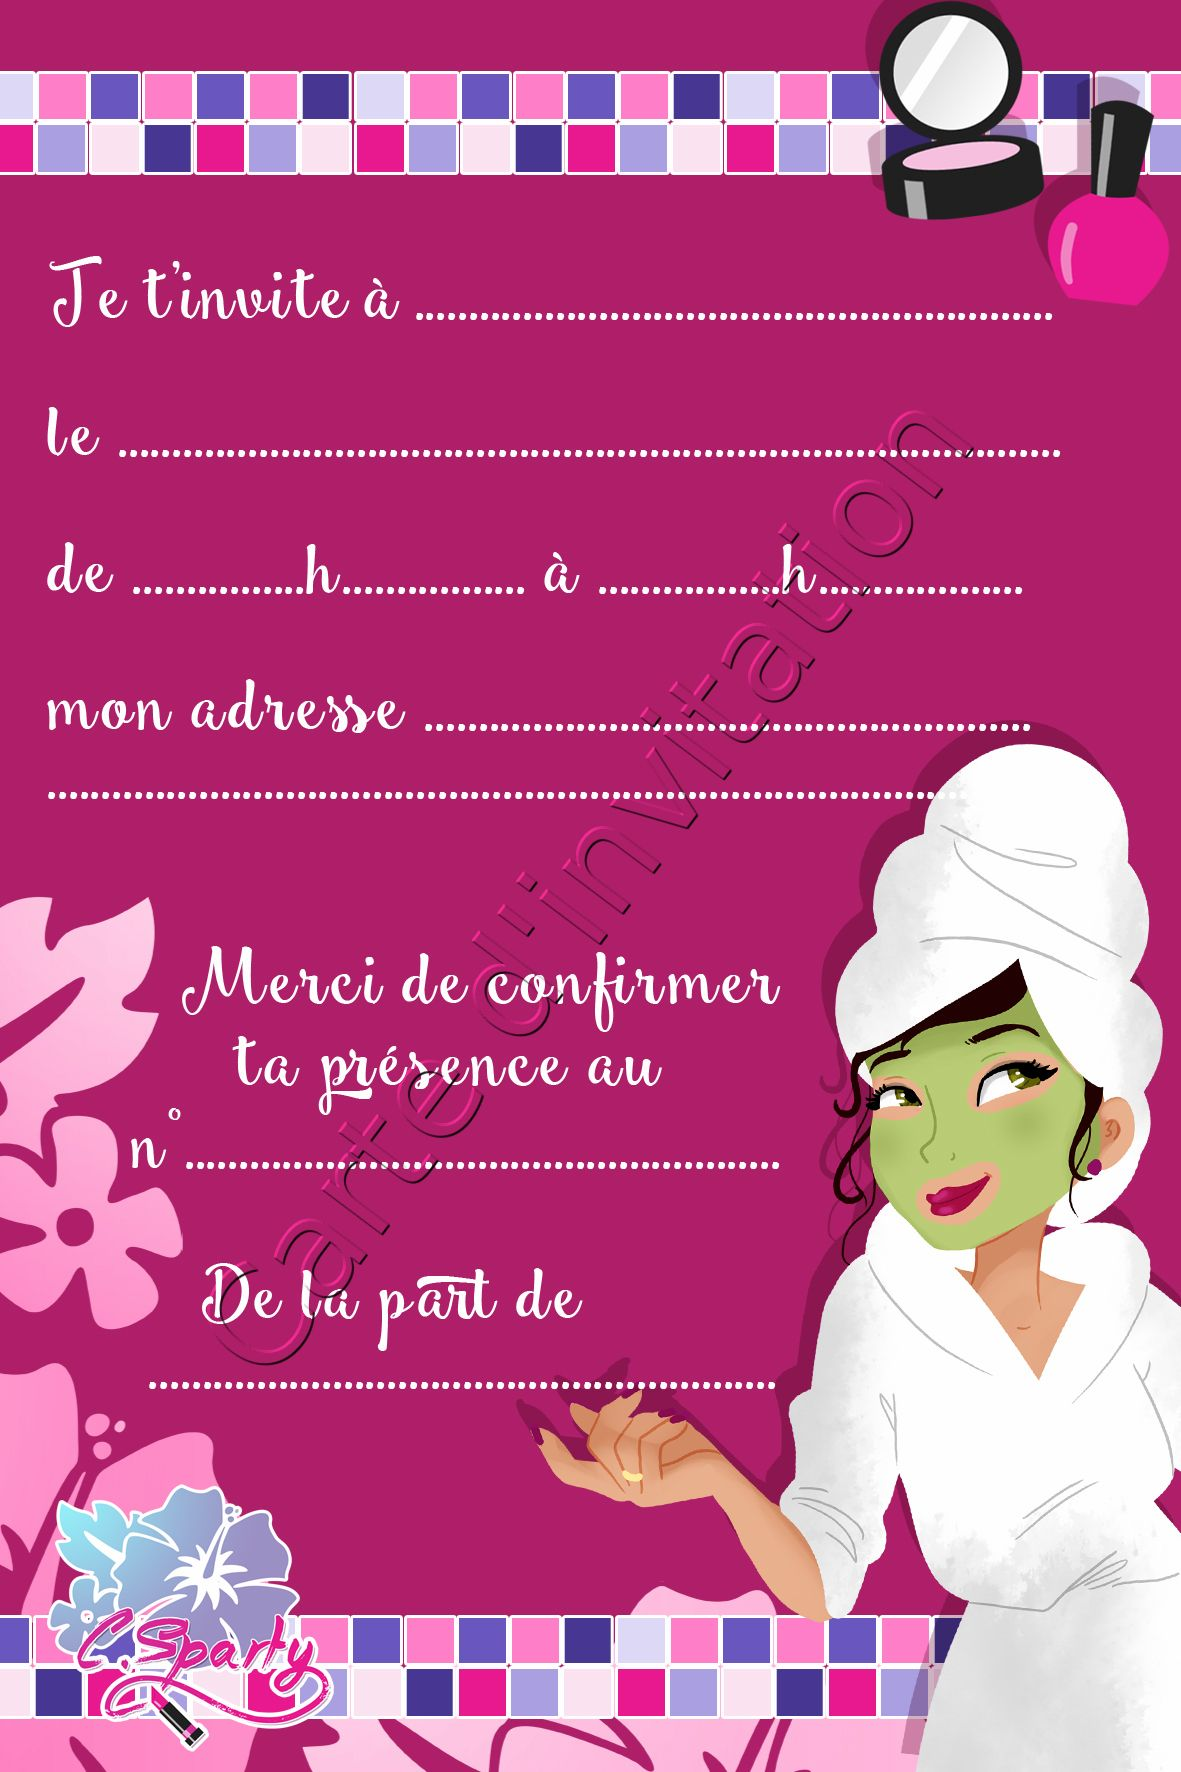 Www Jolie Carte Com Jolie Carte D Invitation Pour Spa Party Cartonnée Cartes D